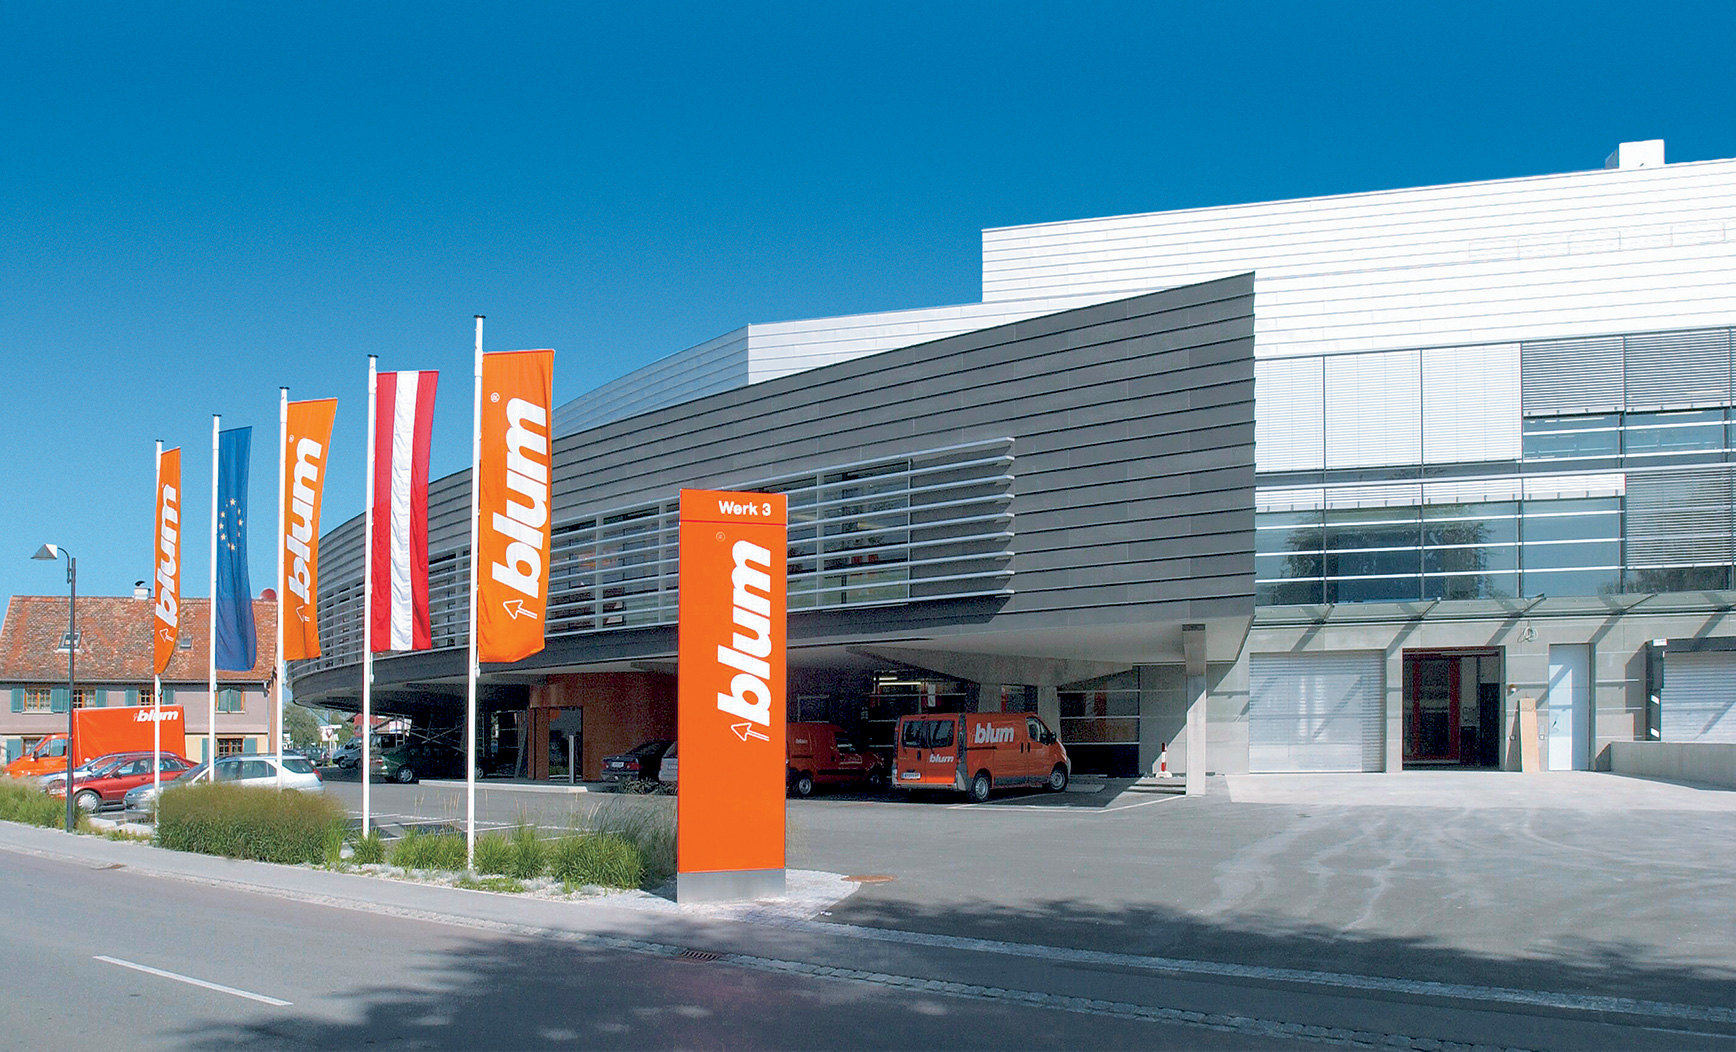 Blum || 8% increase in turnover